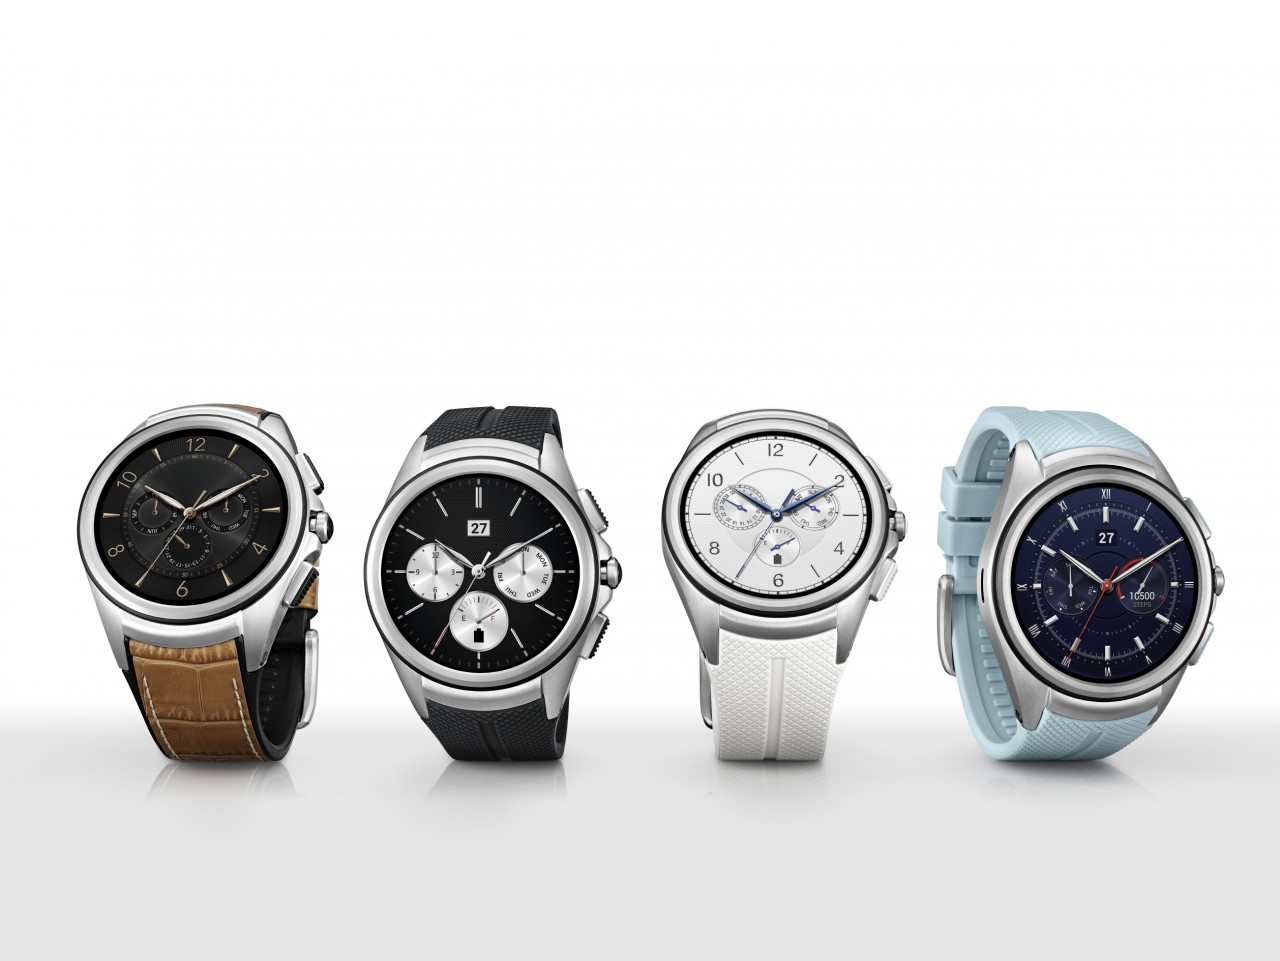 LG_Watch Urbane 2nd Edition